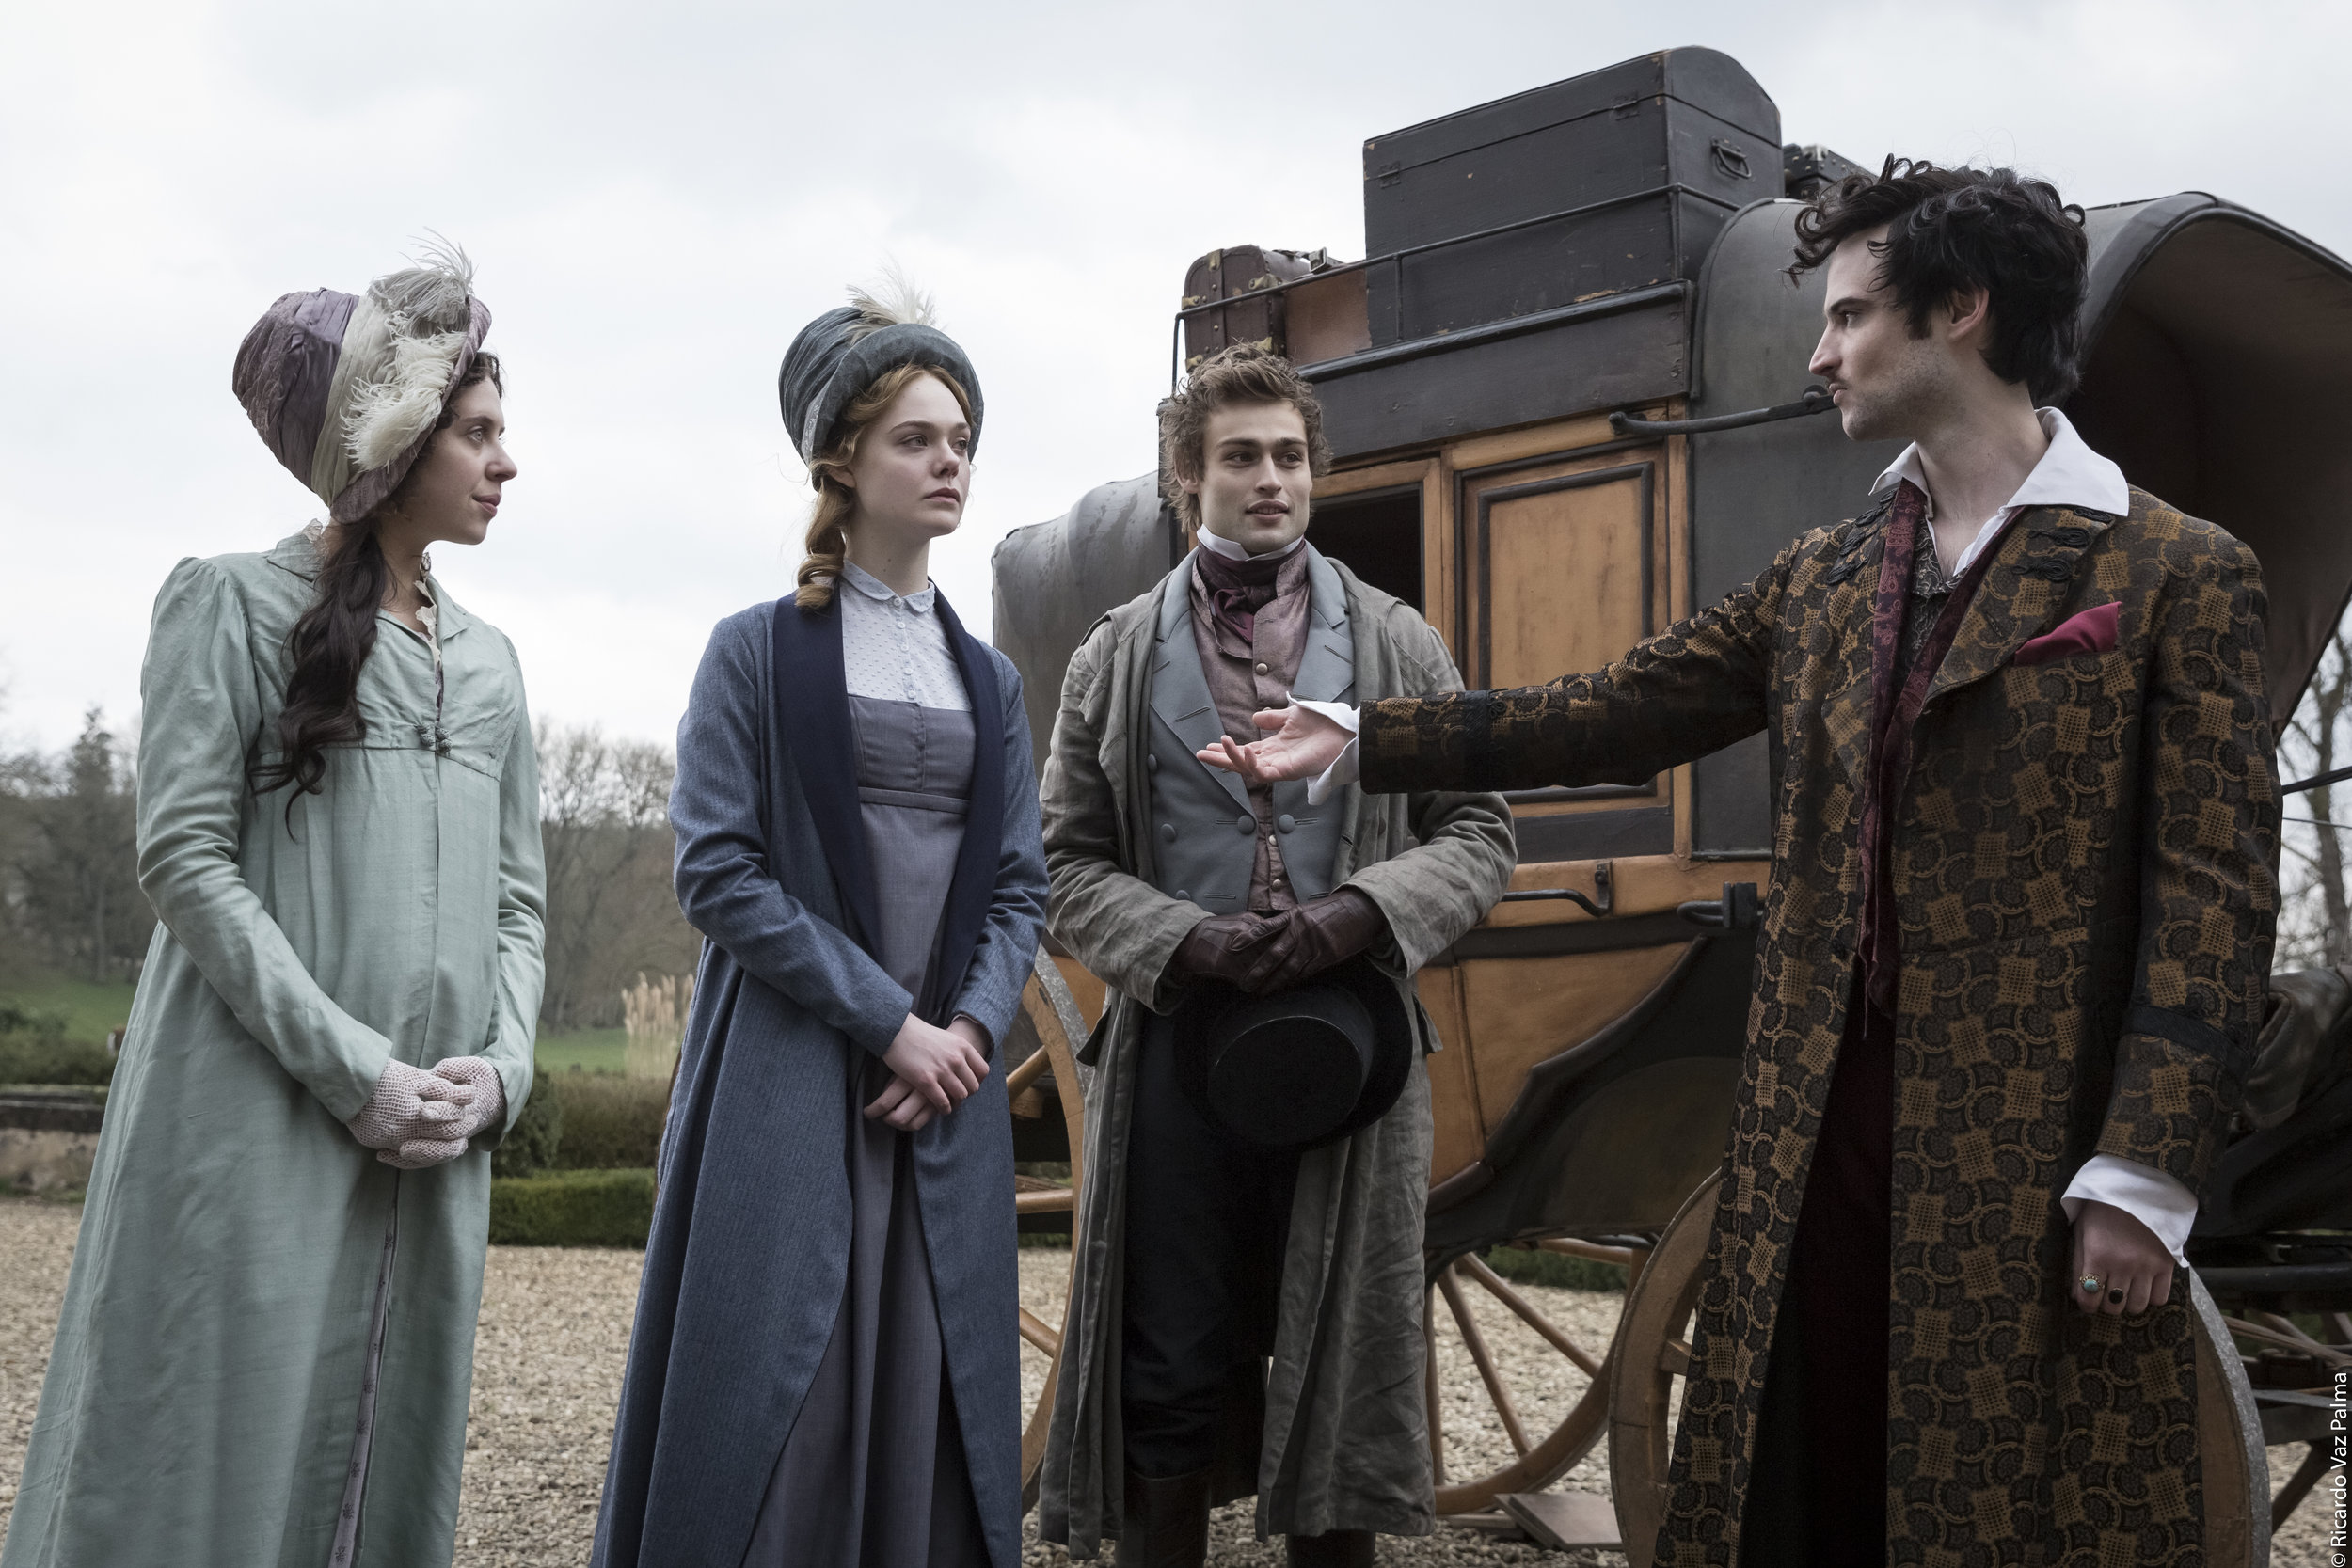 Bel Powley, Elle Fanning, Douglas Booth and Tom Sturbridge in Mary Shelley